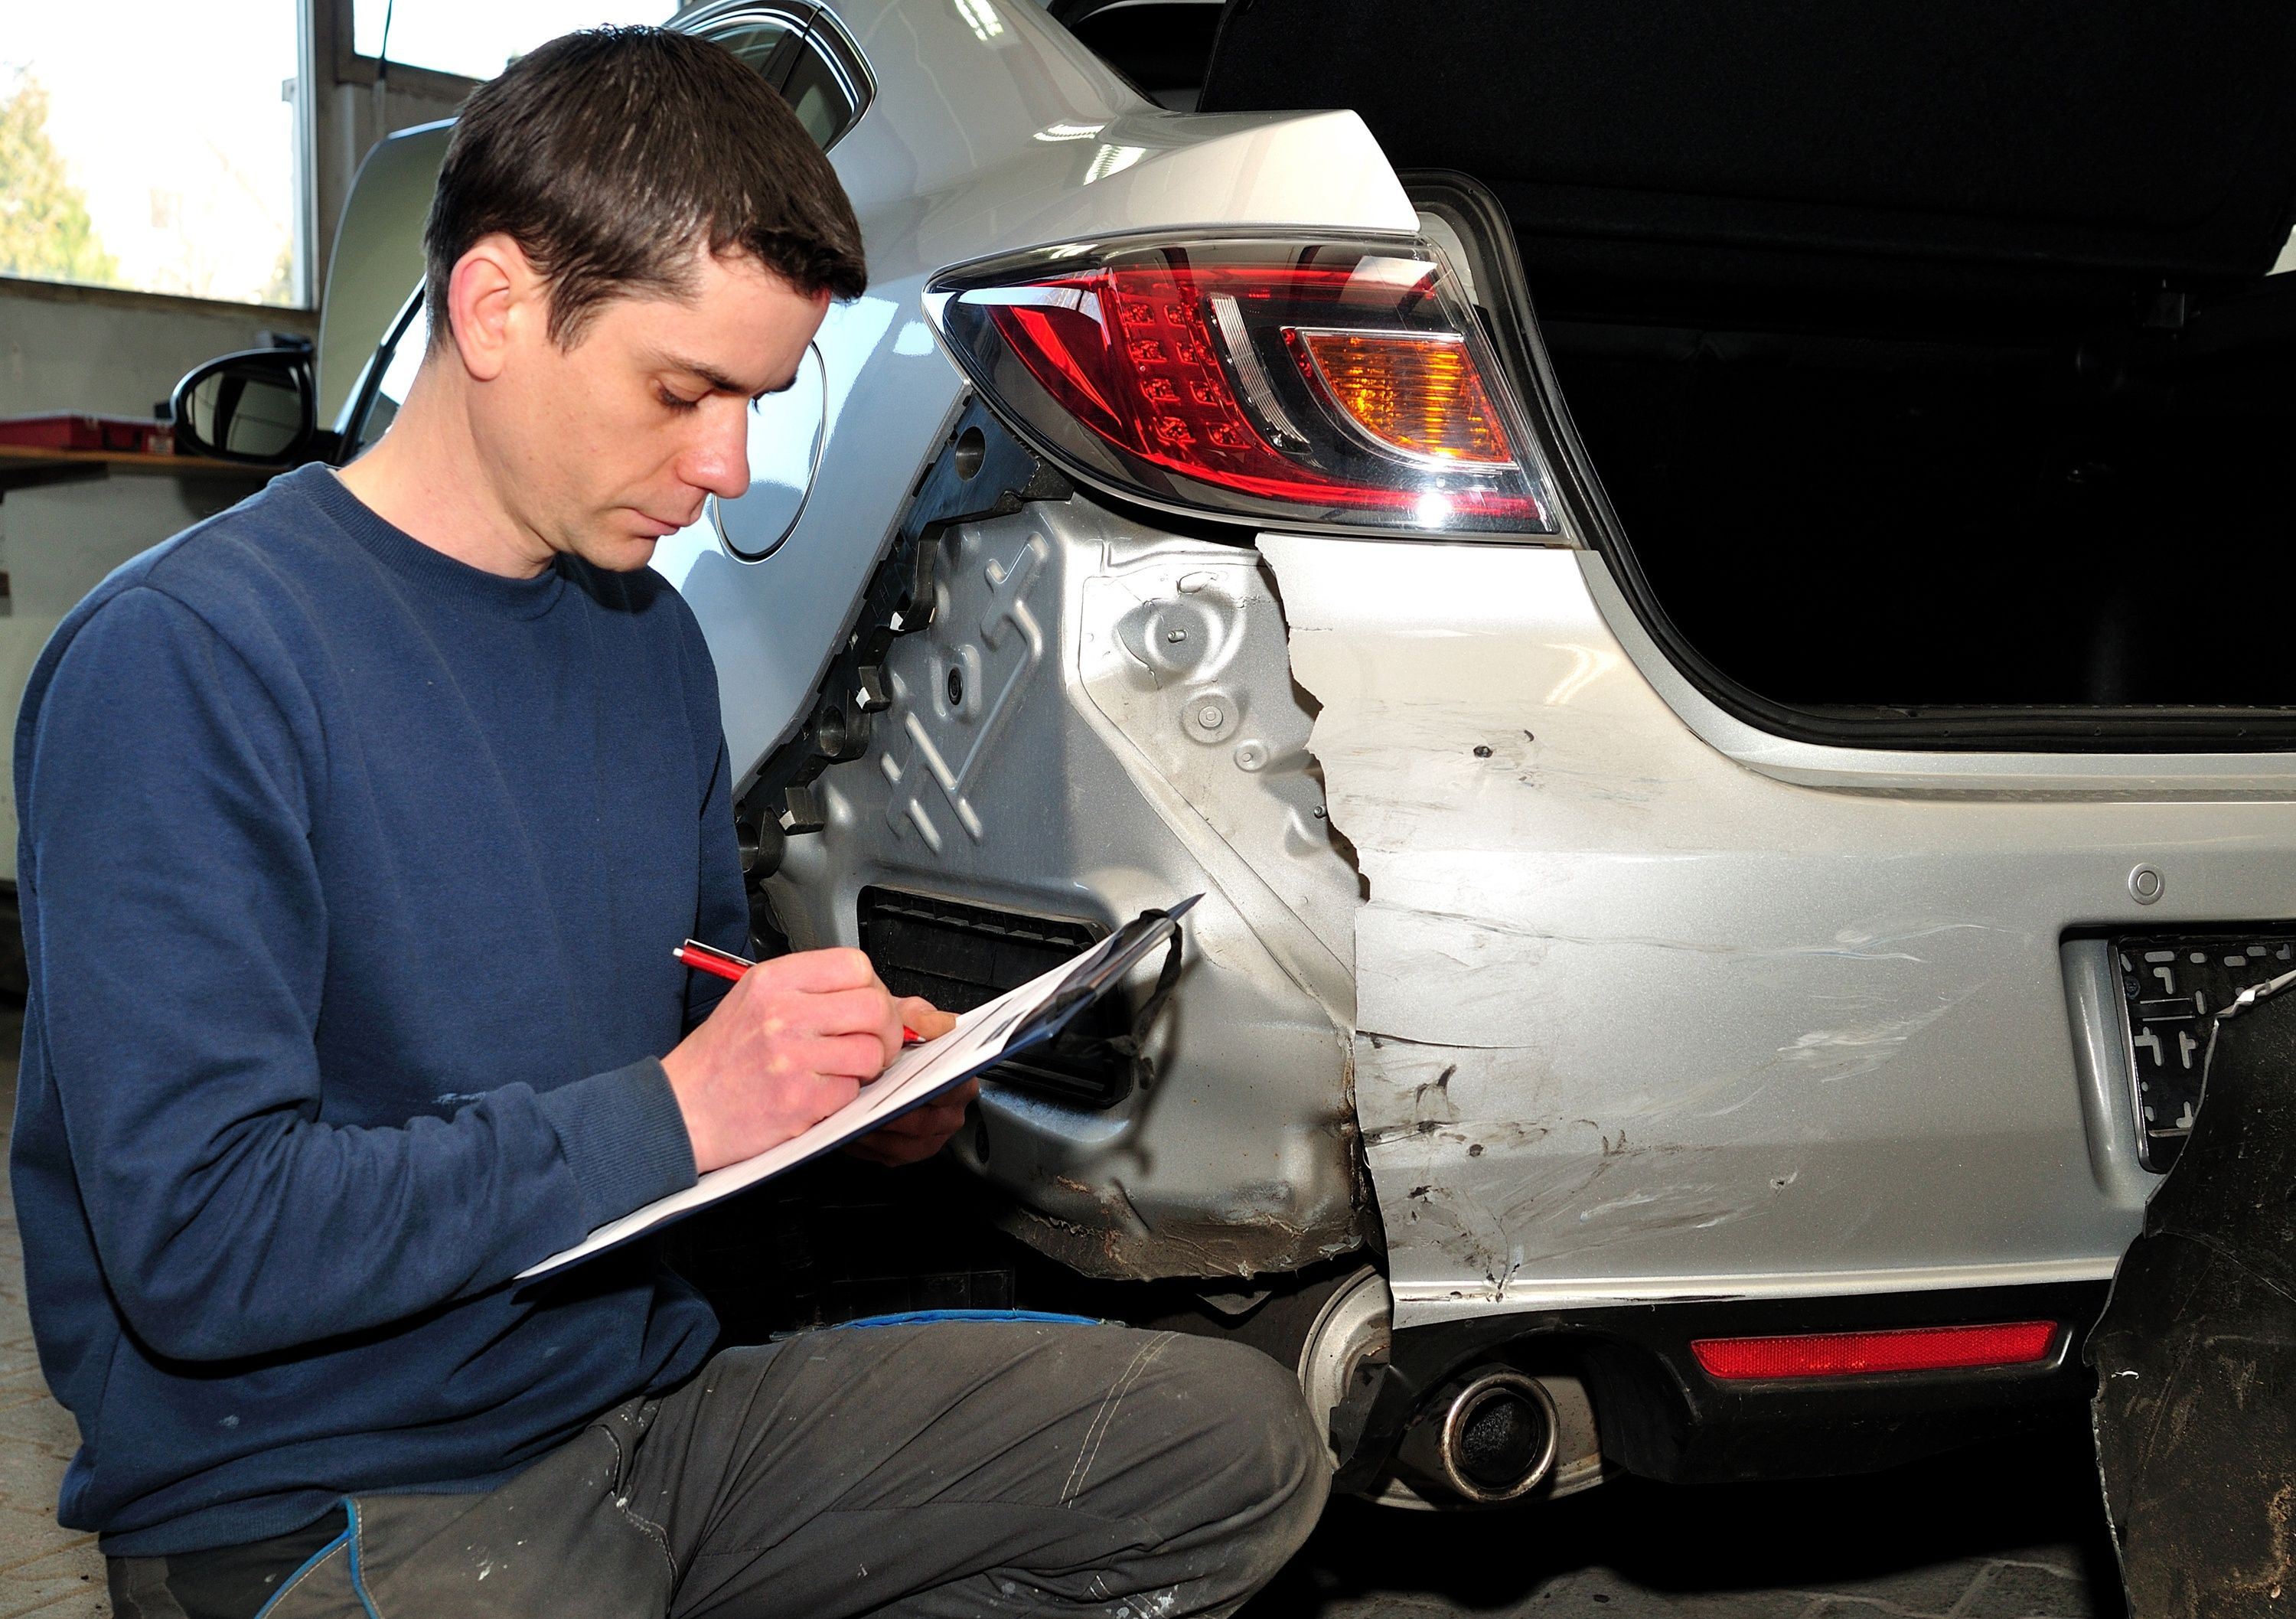 Icbc Will Give You 2 Years To Have Your Vehicle Undergo Collision